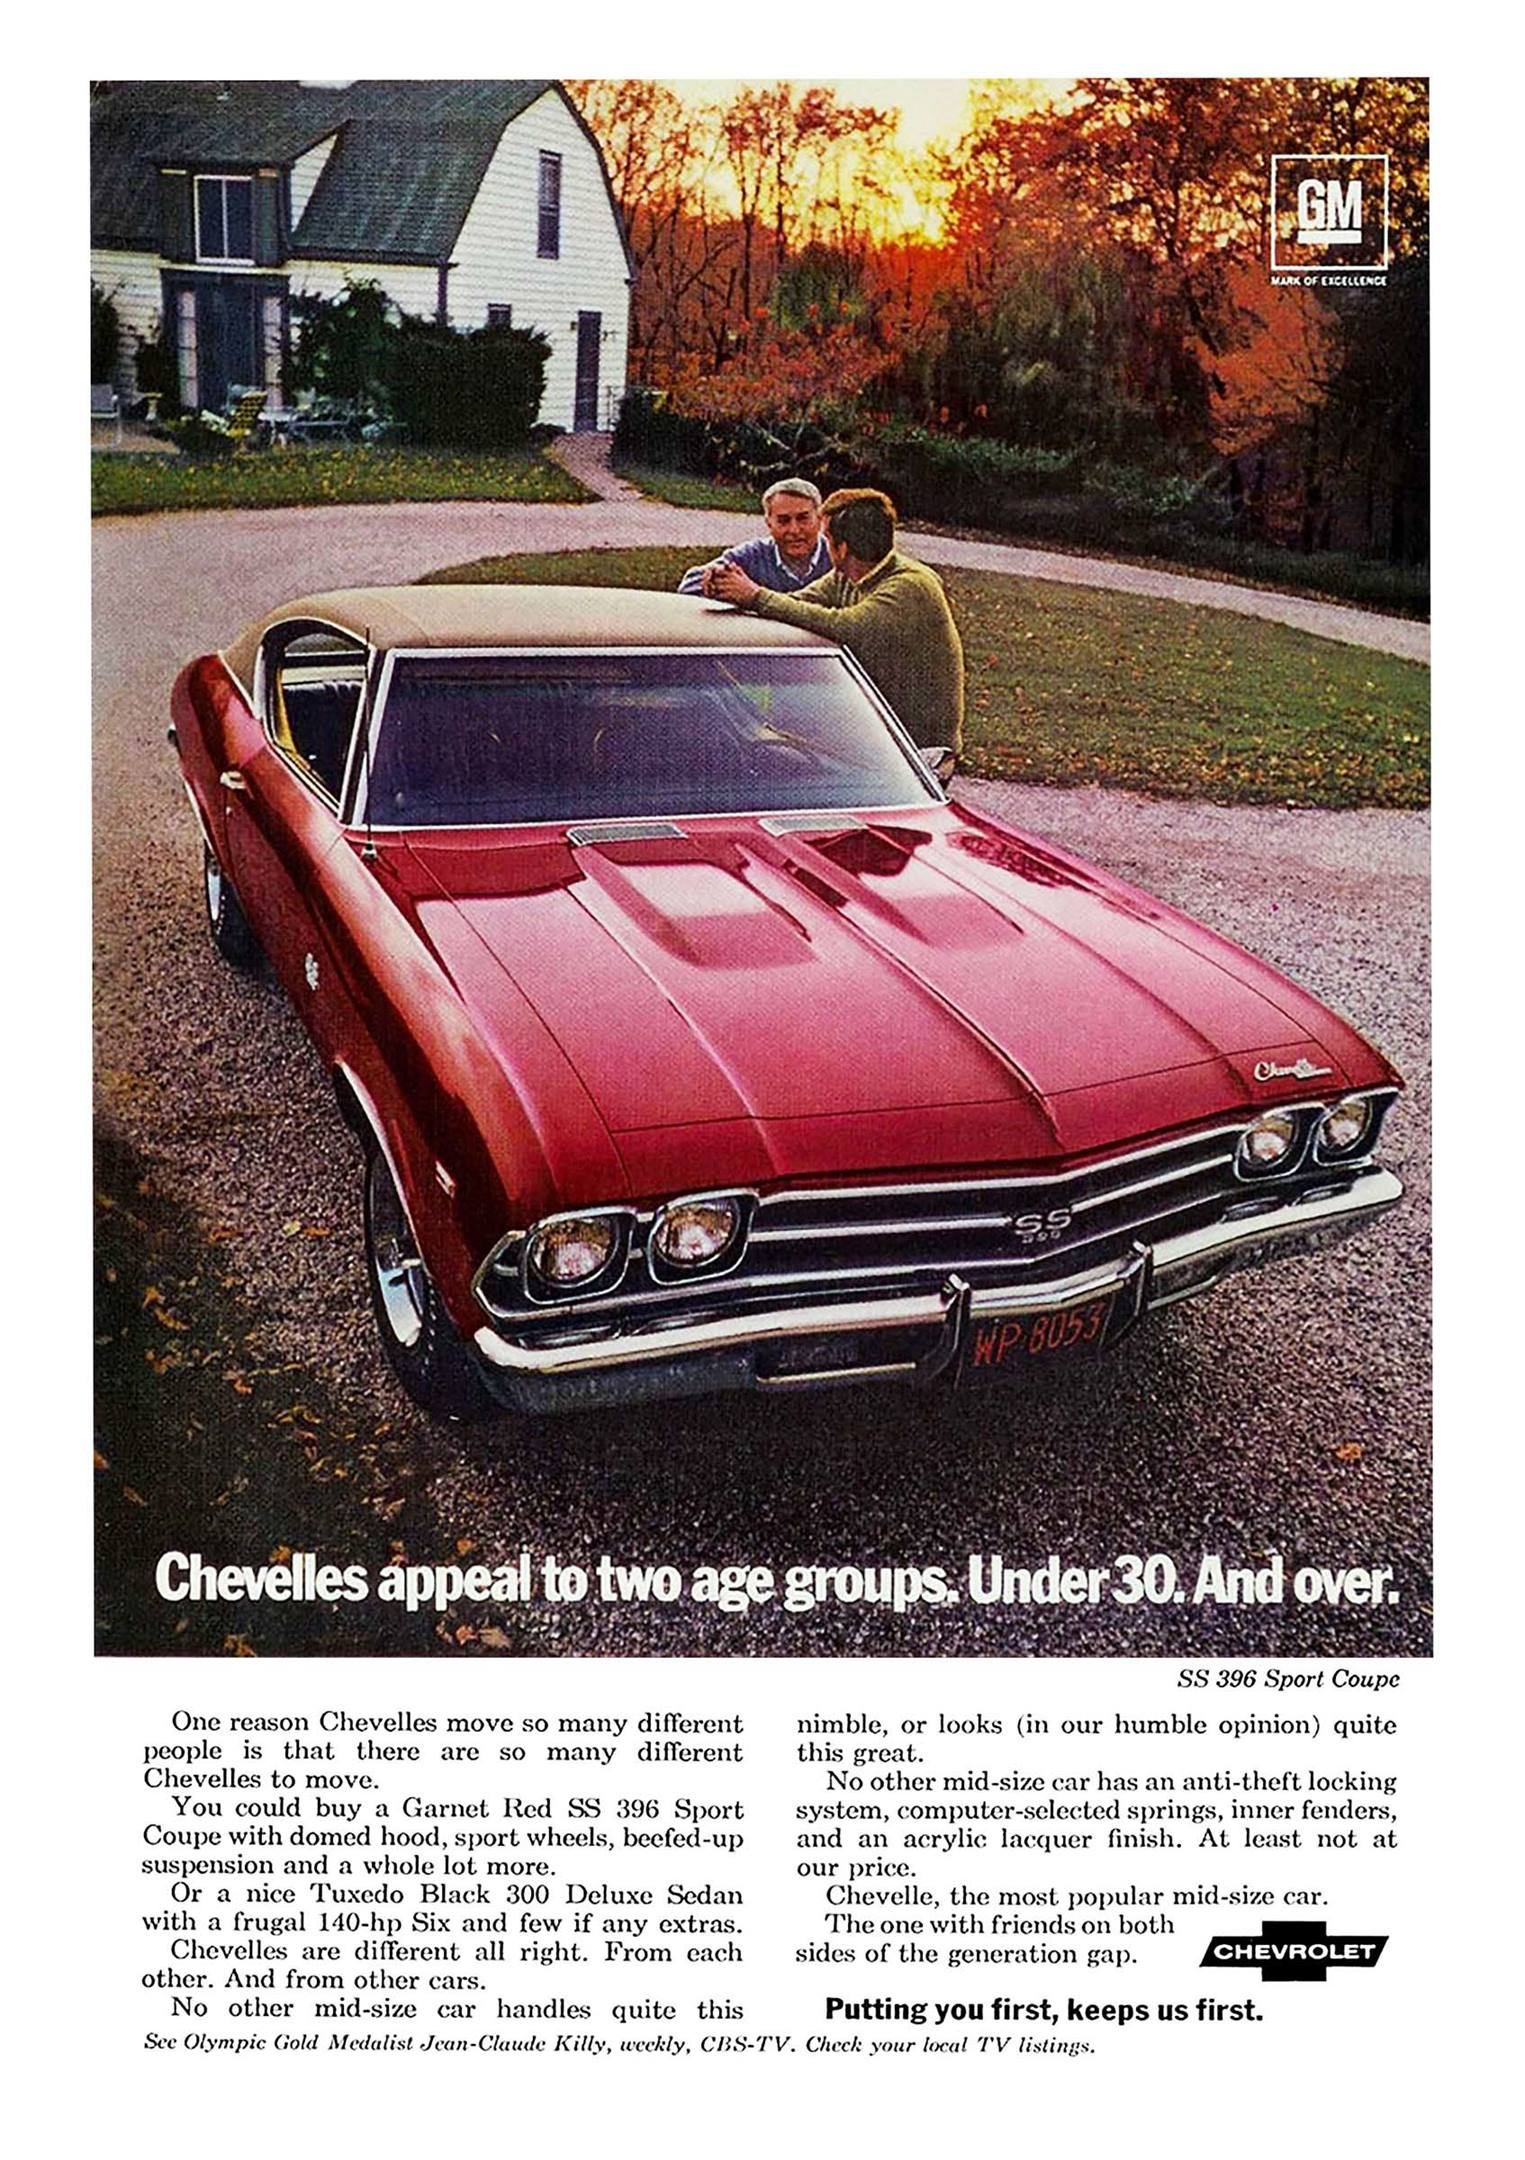 1969 Chevrolet Chevelle SS ad